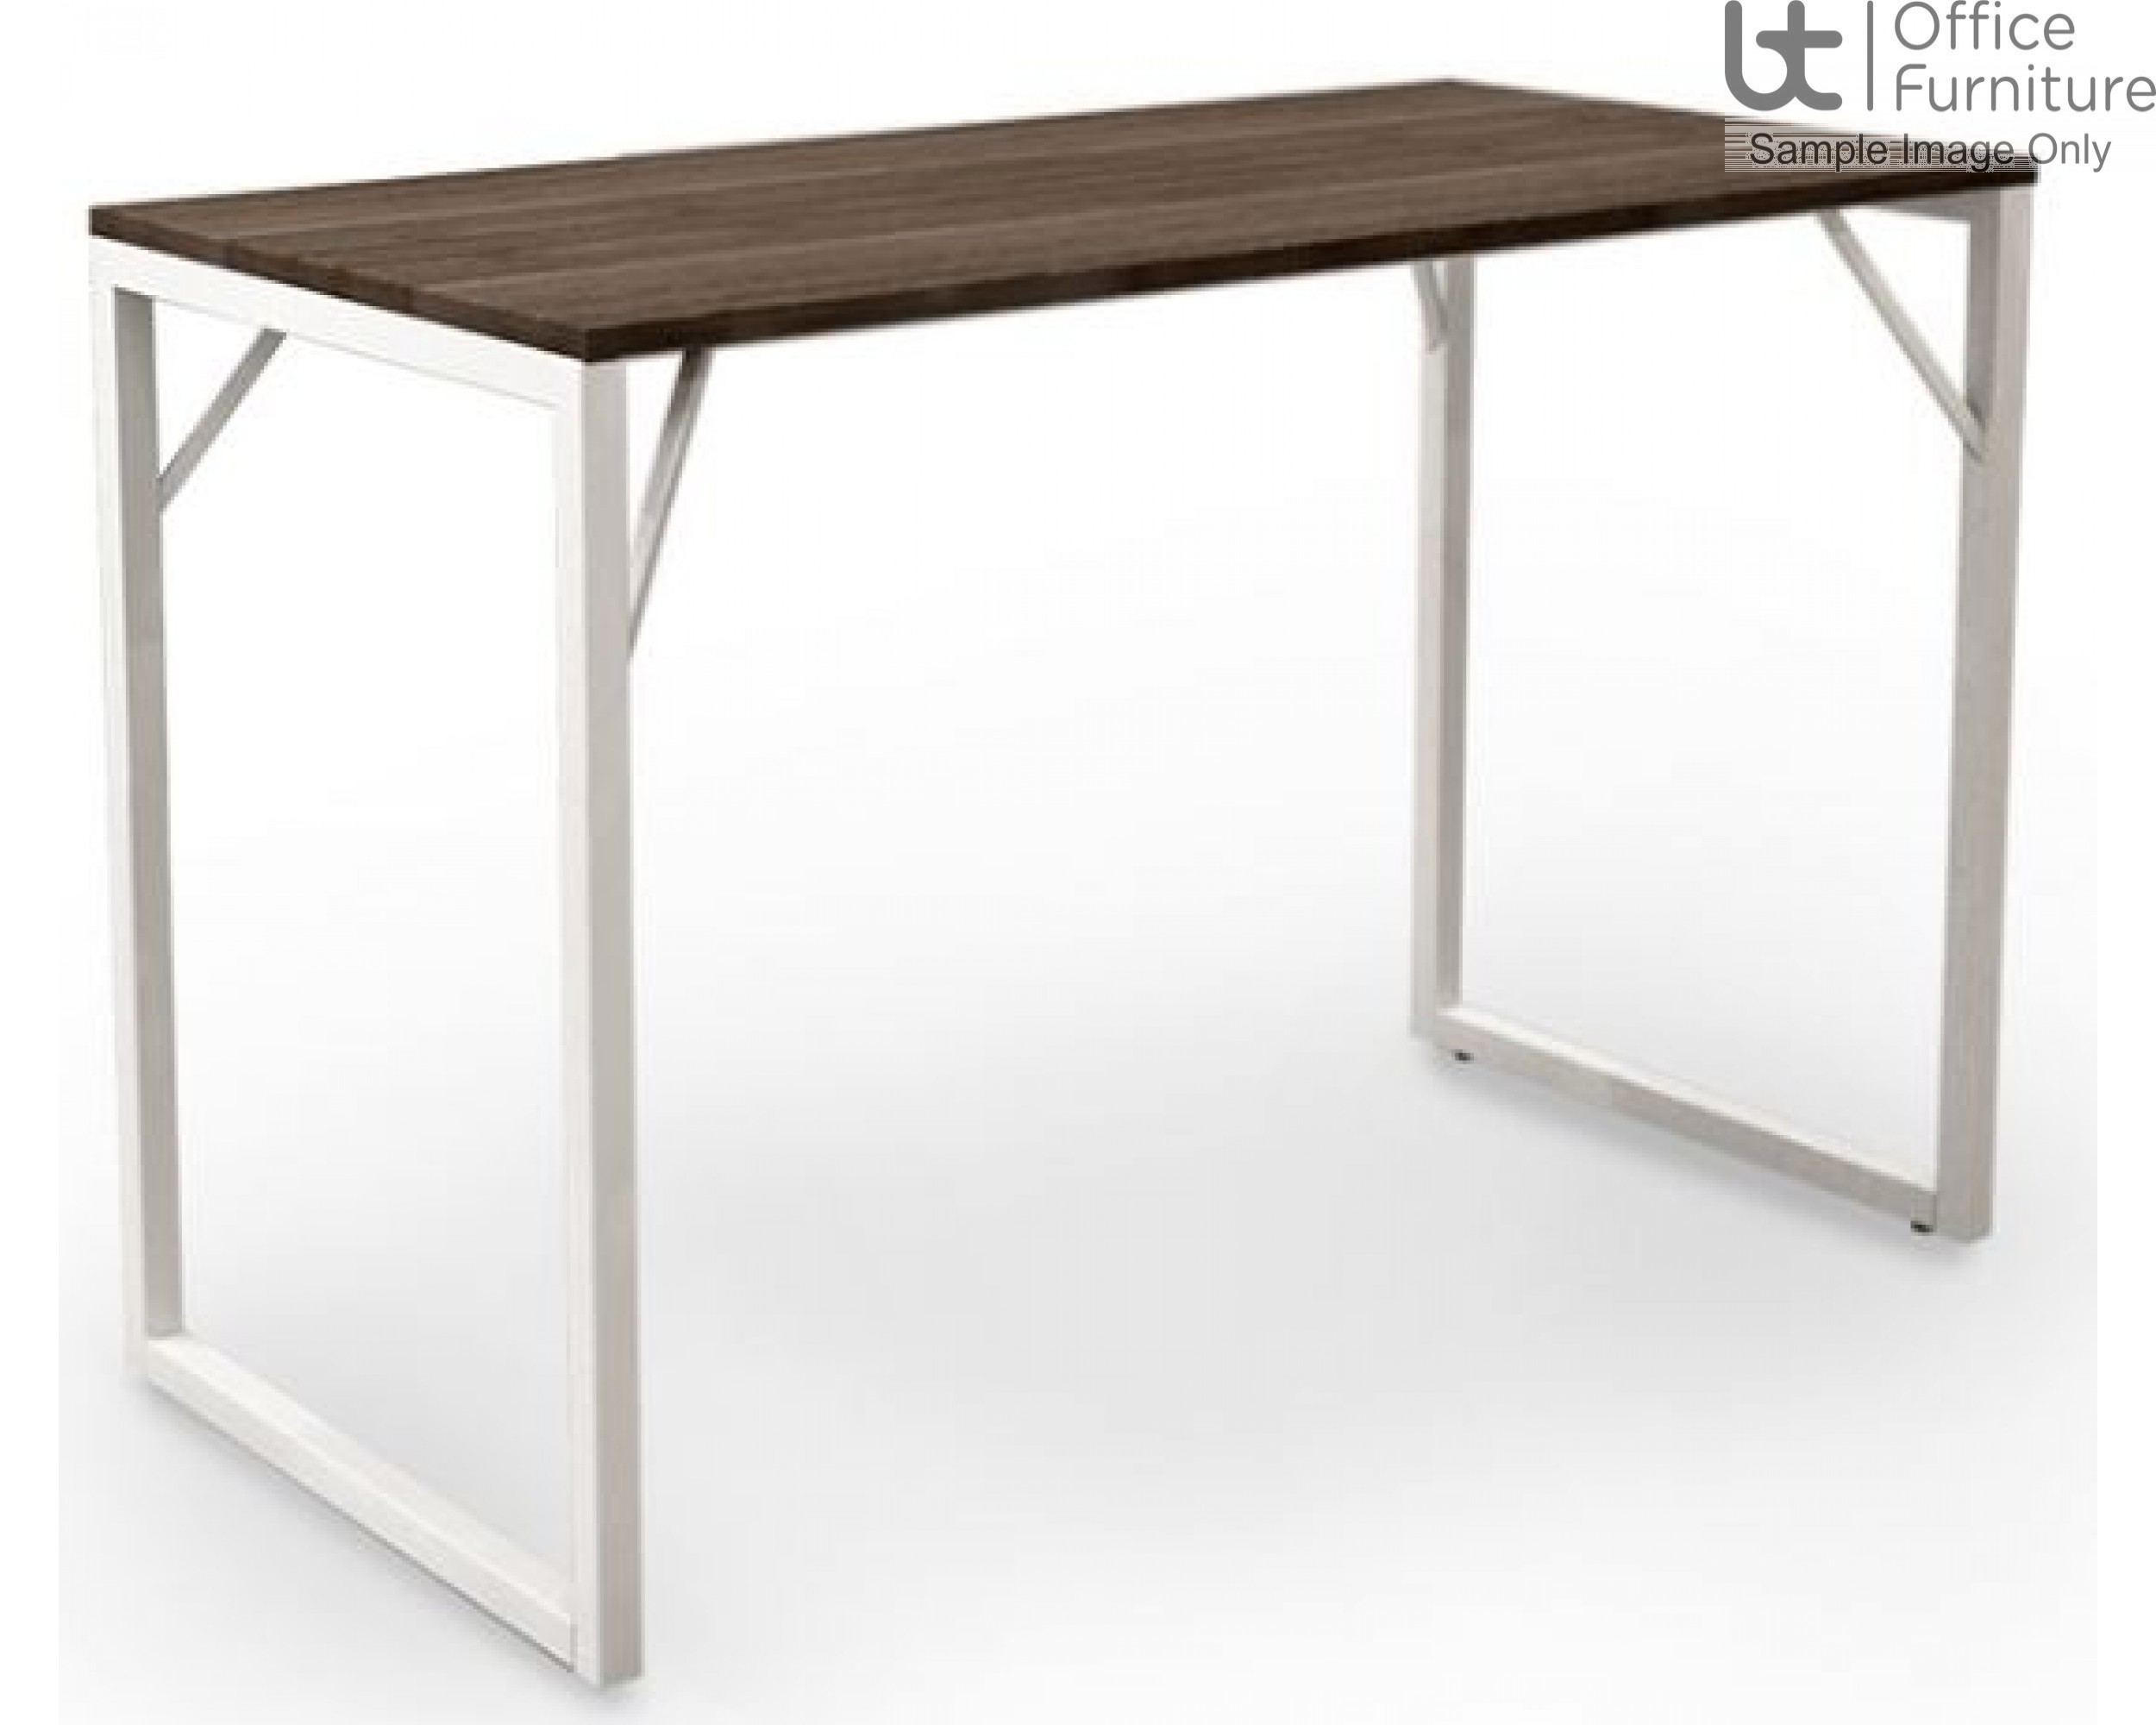 Robust Block Steel Frame High Bench Dining Table W2000 x D800 x H1100mm